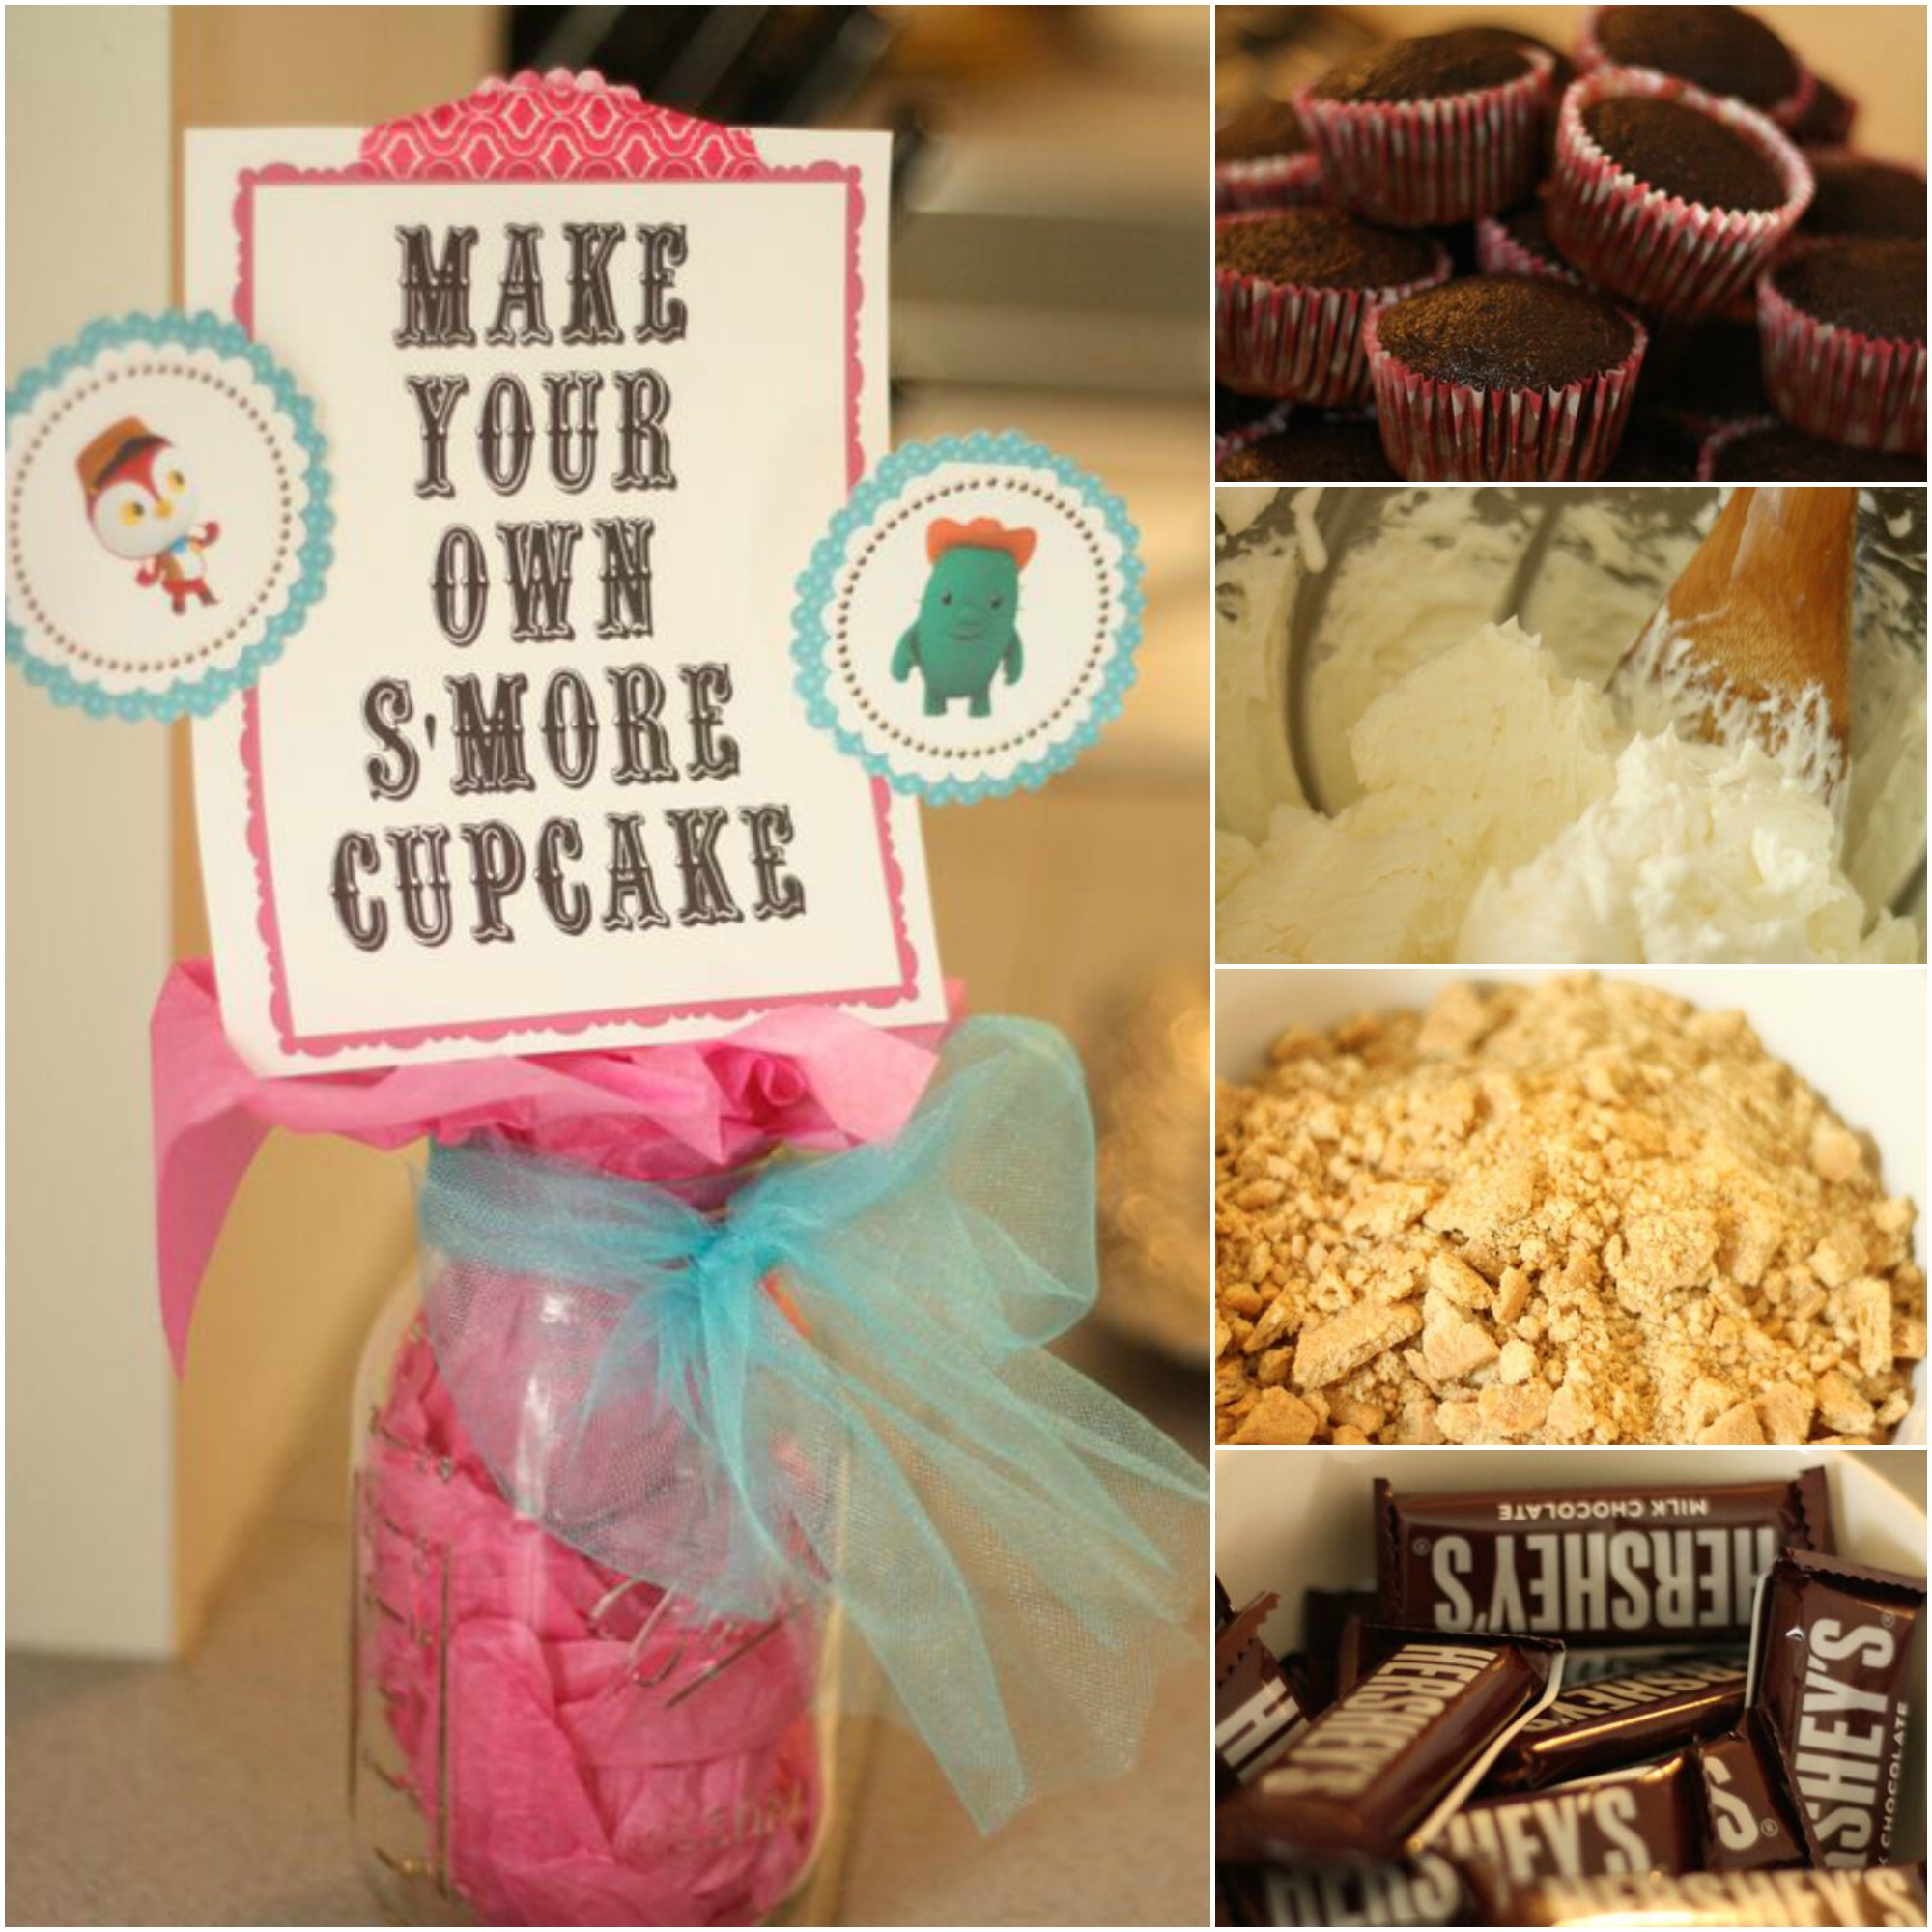 Make Your Own S'more Cupcake